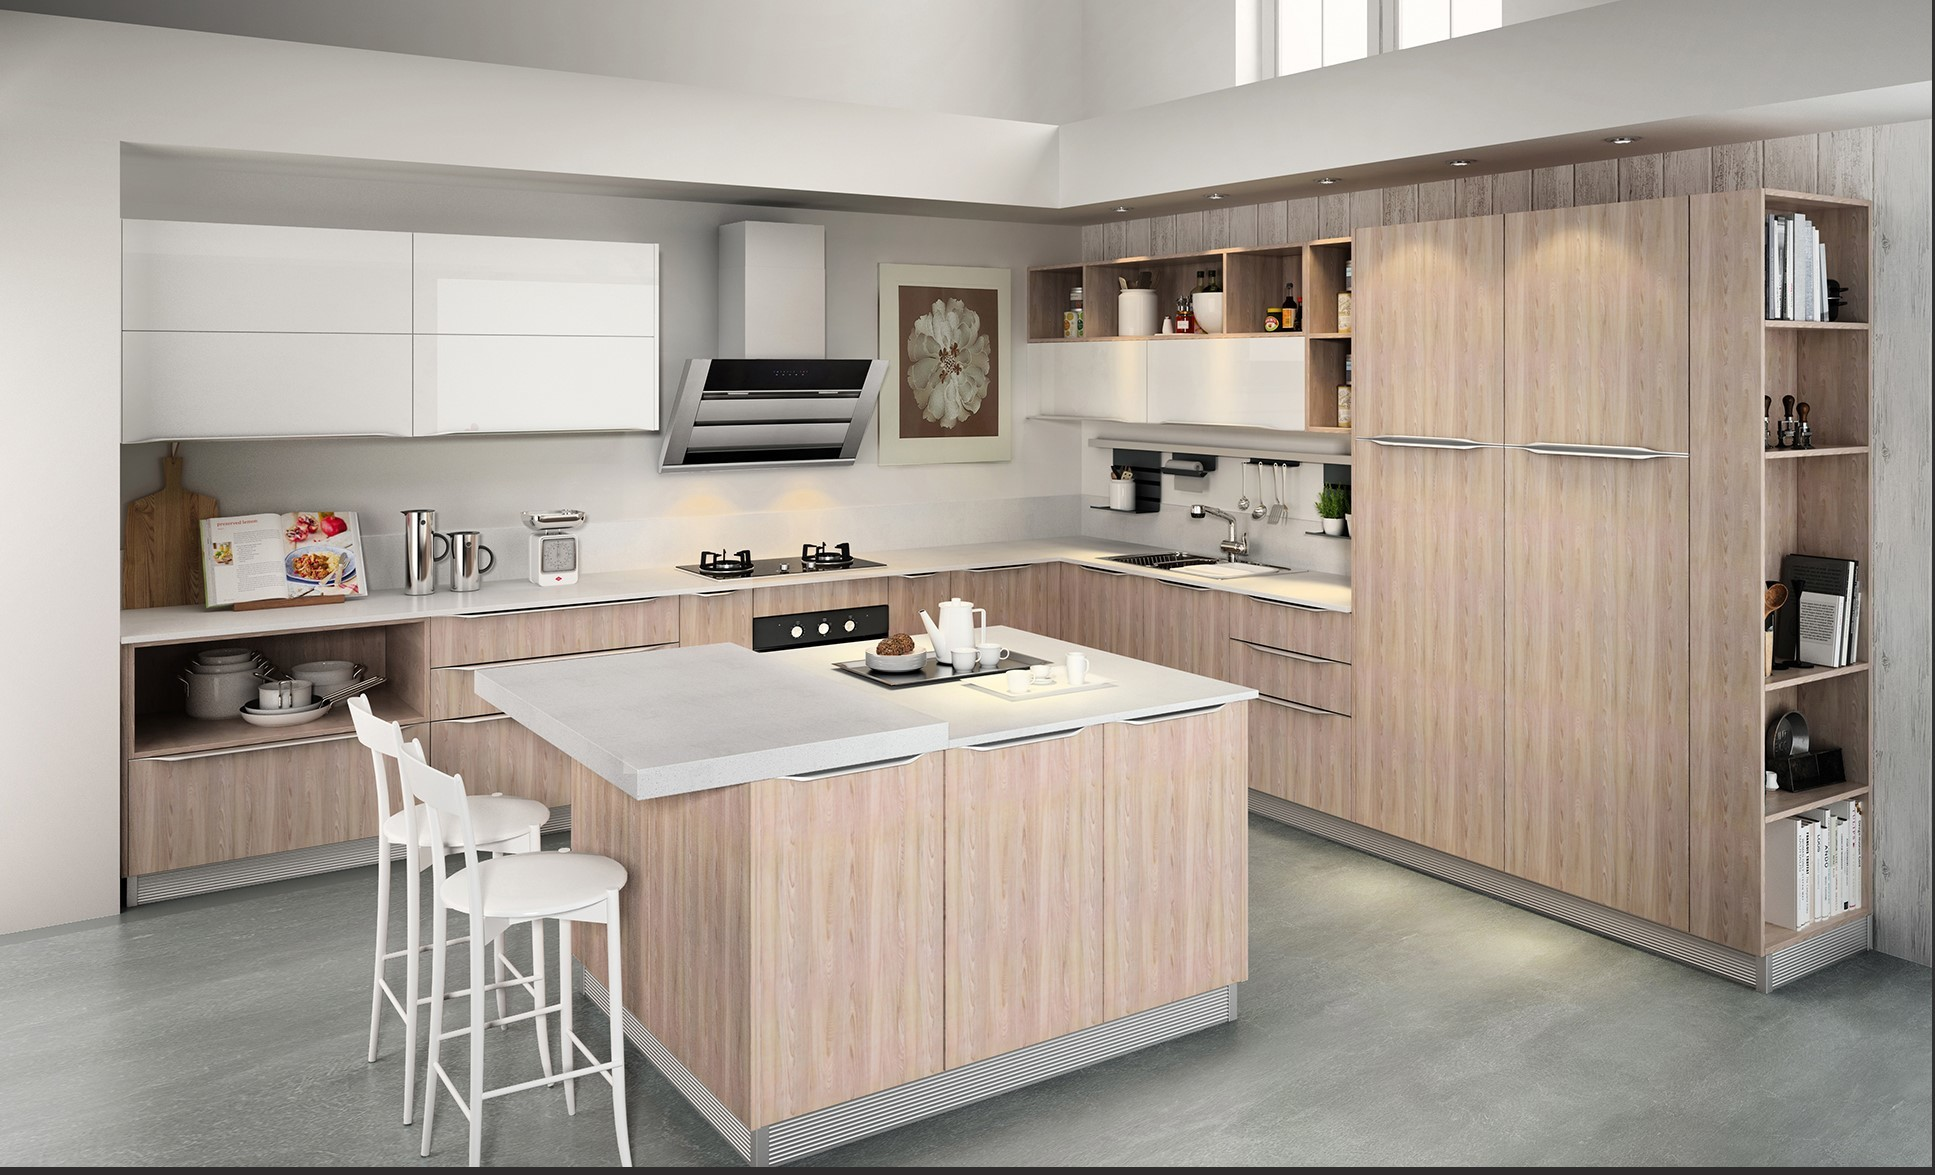 High Quality Villia Project Norlan Morden Kitchen Cabinet With